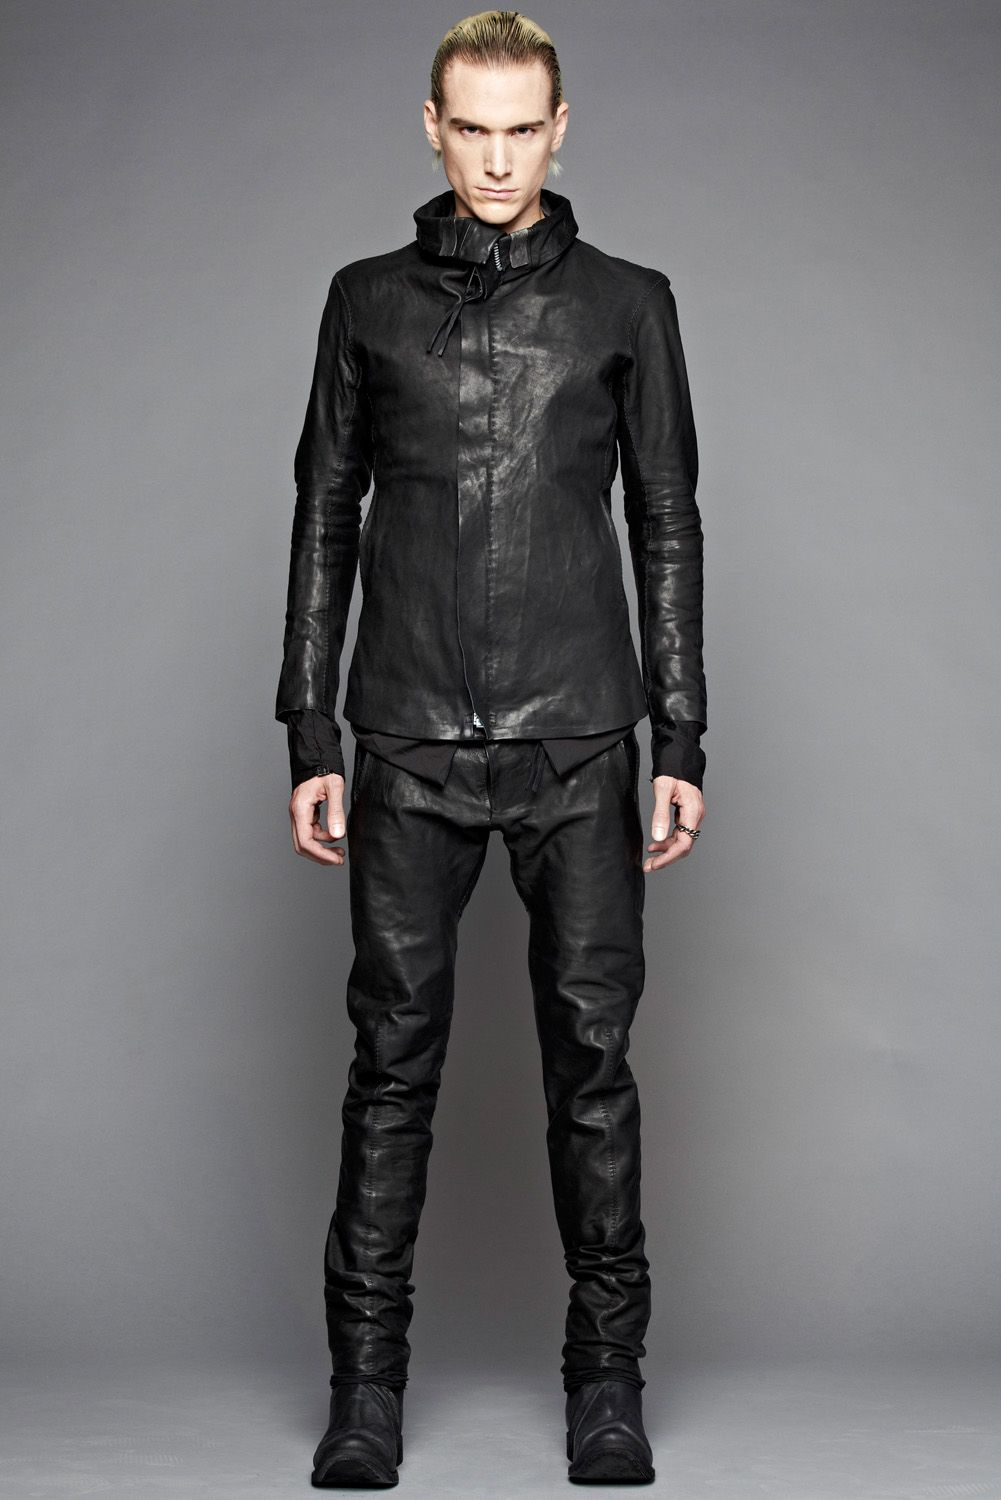 Boris Bidjan Saberi has produced a capsule collection for Atelier New York. The curious fact is that all of the leather pieces are made completely by hand in Saberi's atelier in Barcelona.